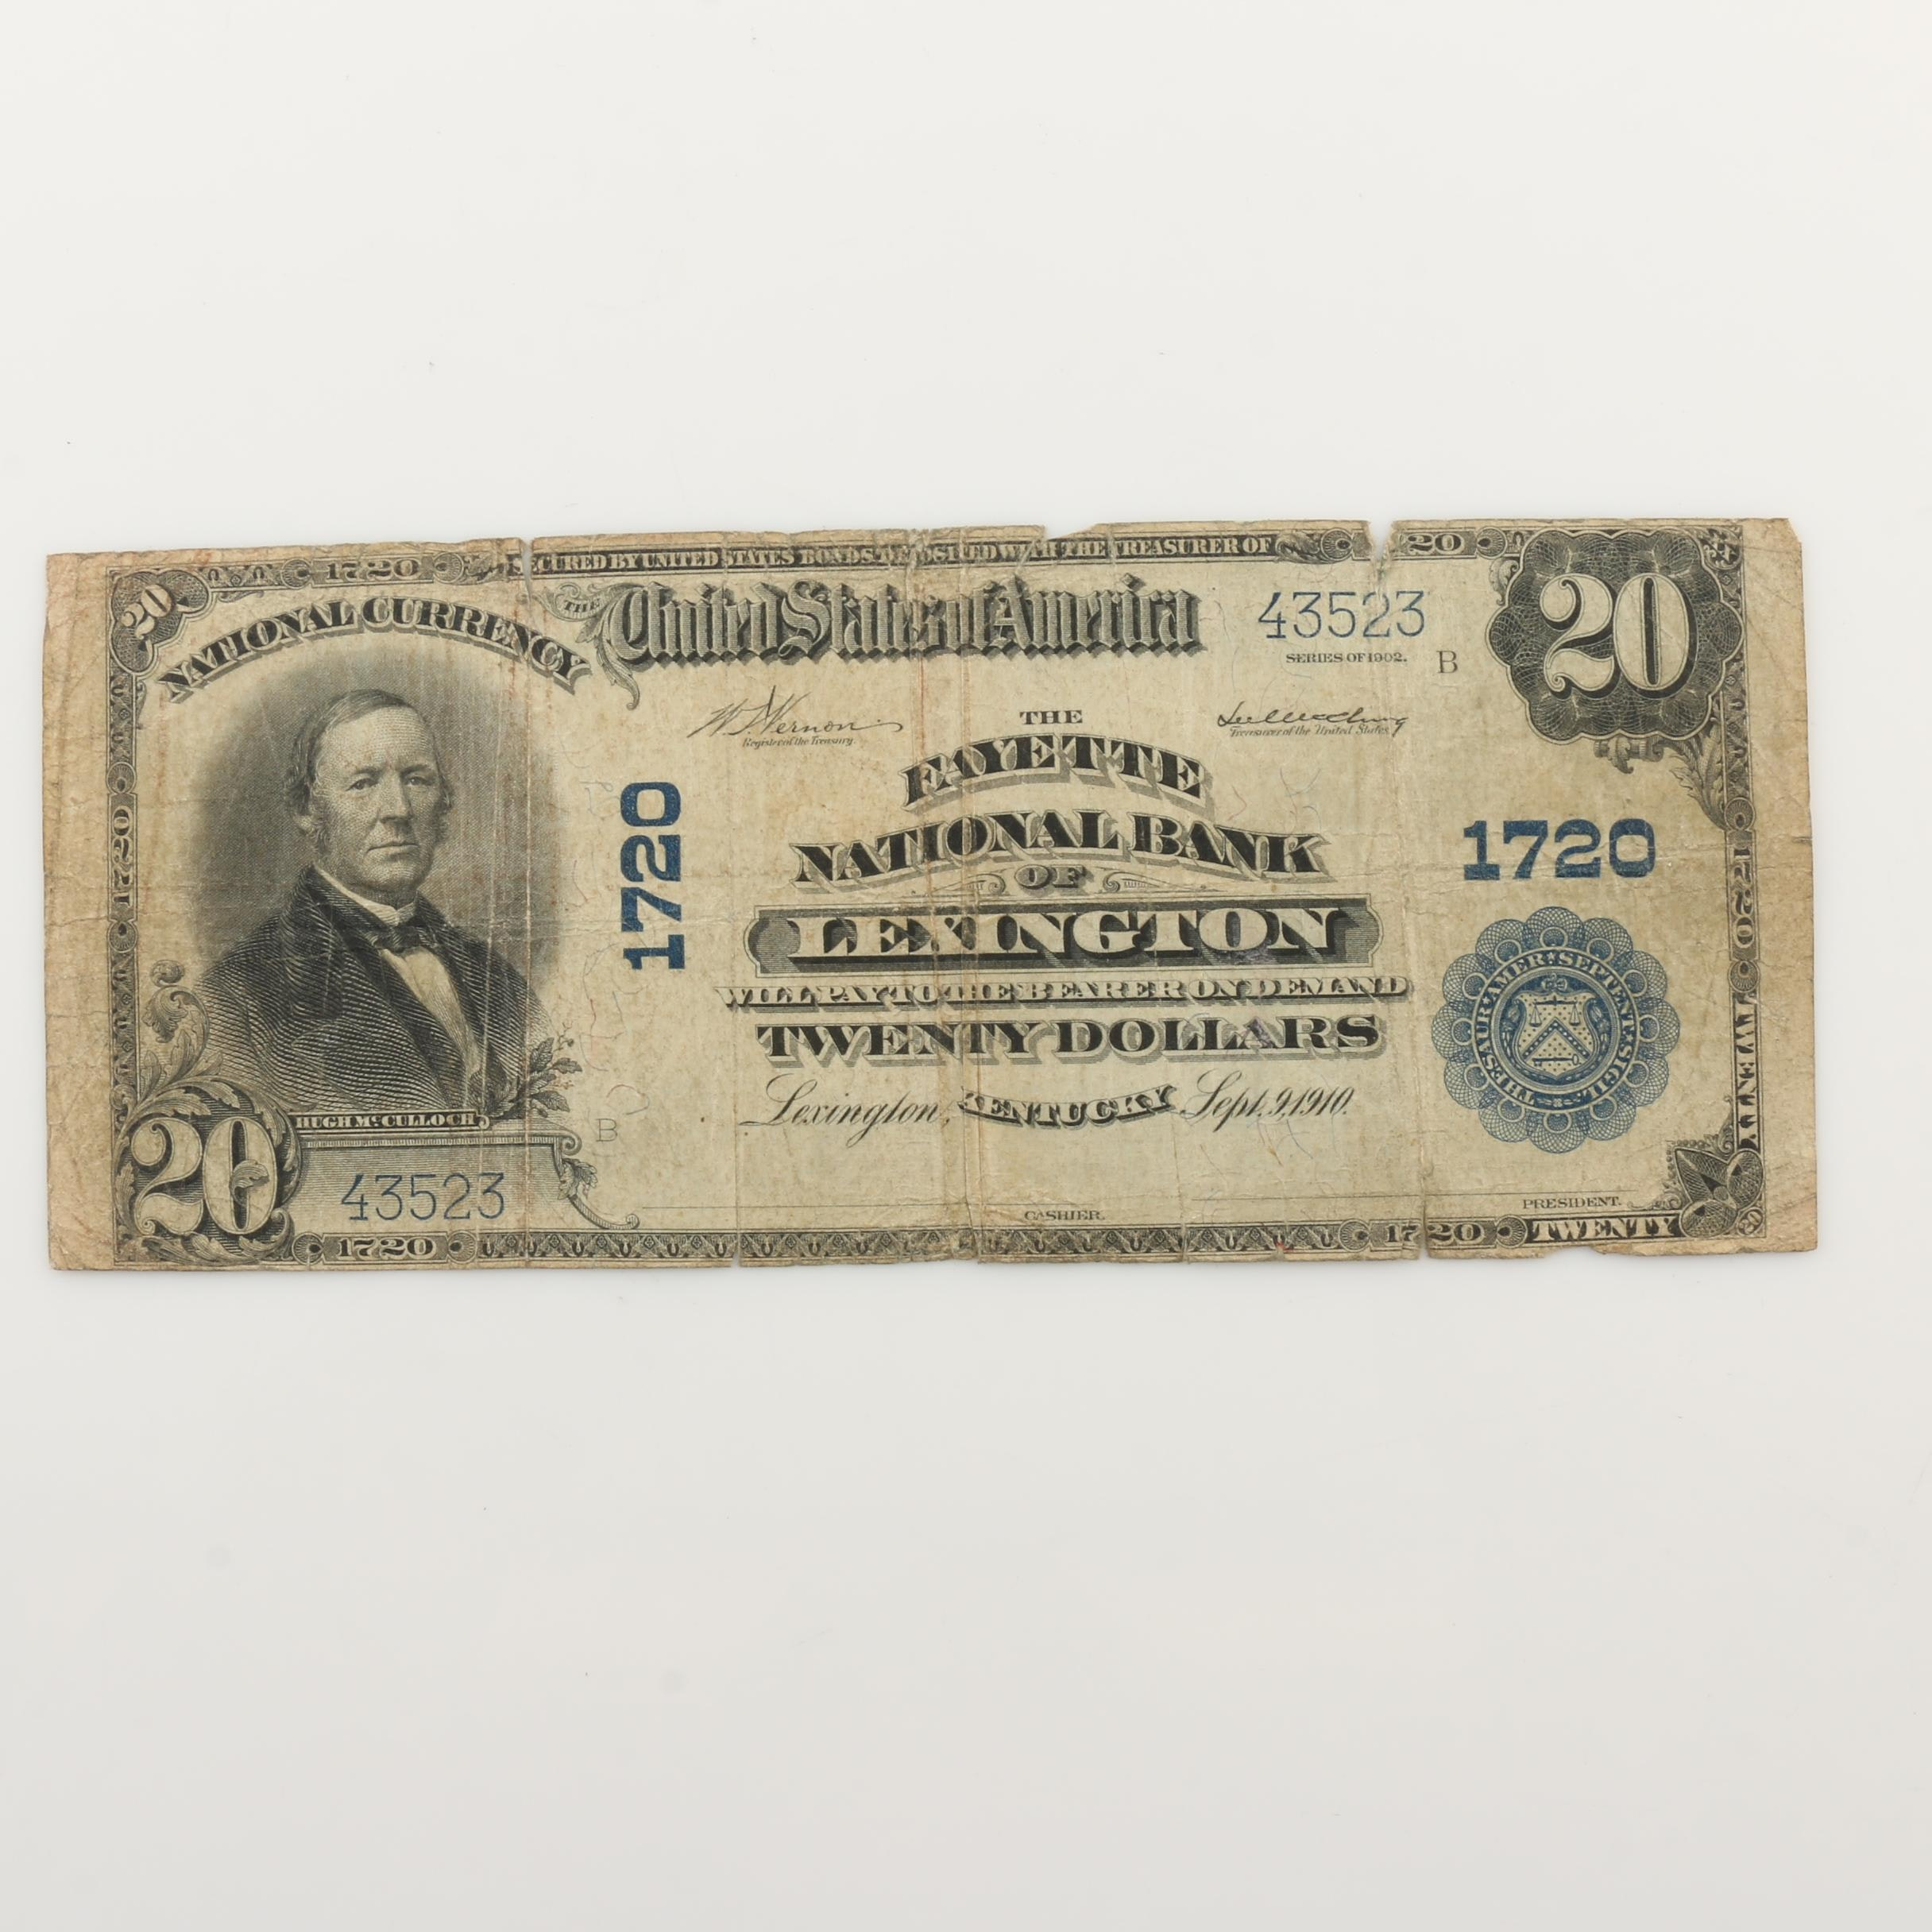 Large Format Series of 1902 $20 National Currency Note